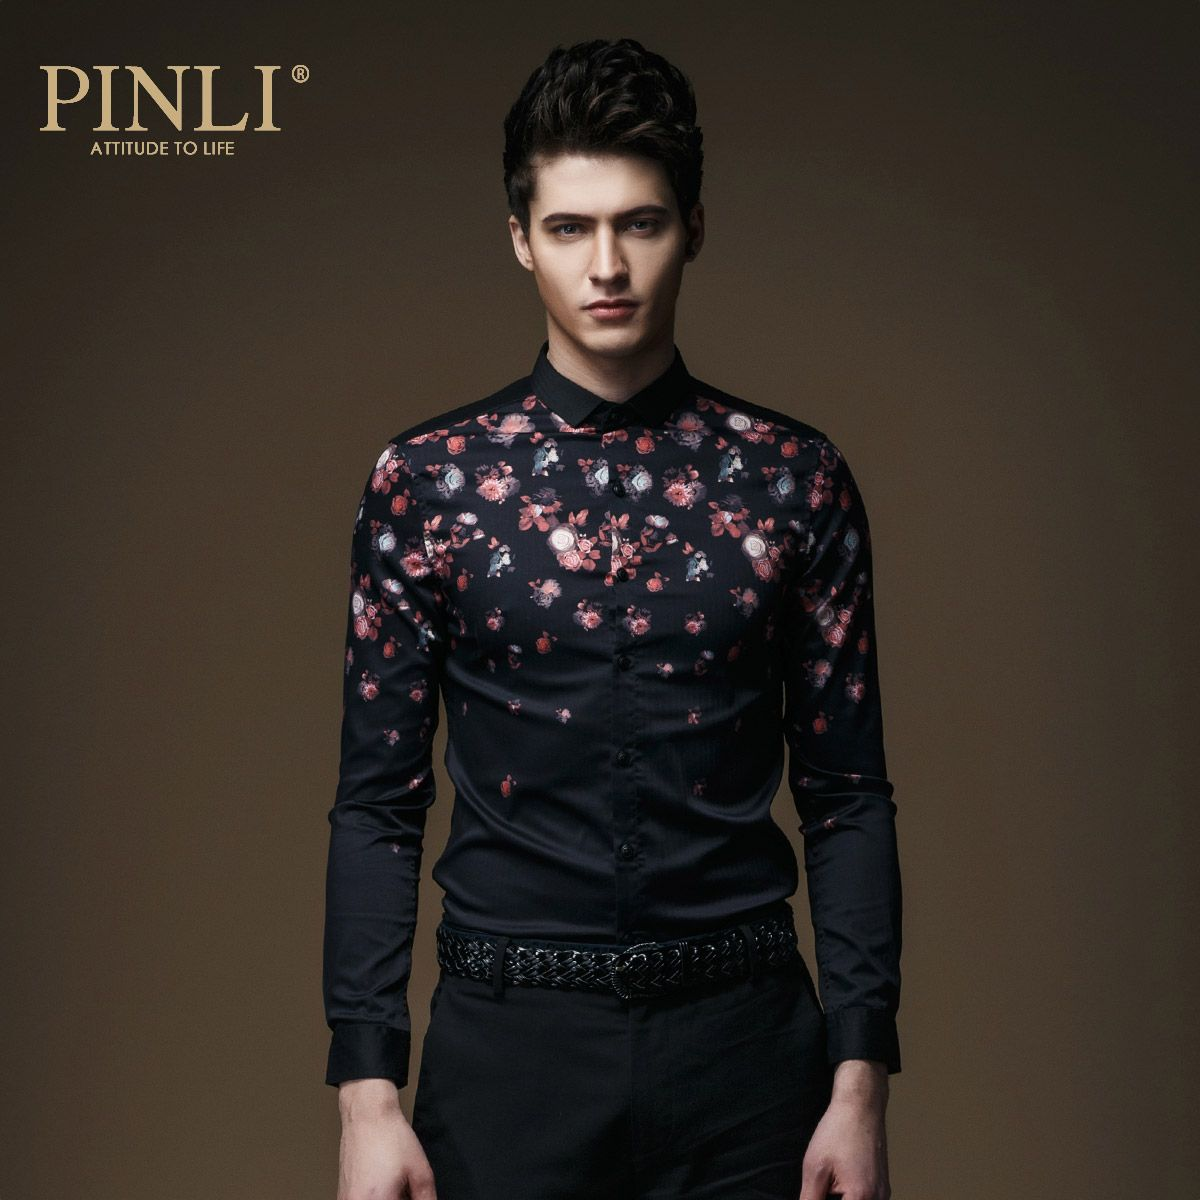 2017 Hot Sale New Pinli Product Made The British Accent And Men's Fashion Cultivate Morality Micro C064 Led Long Sleeve Shirt